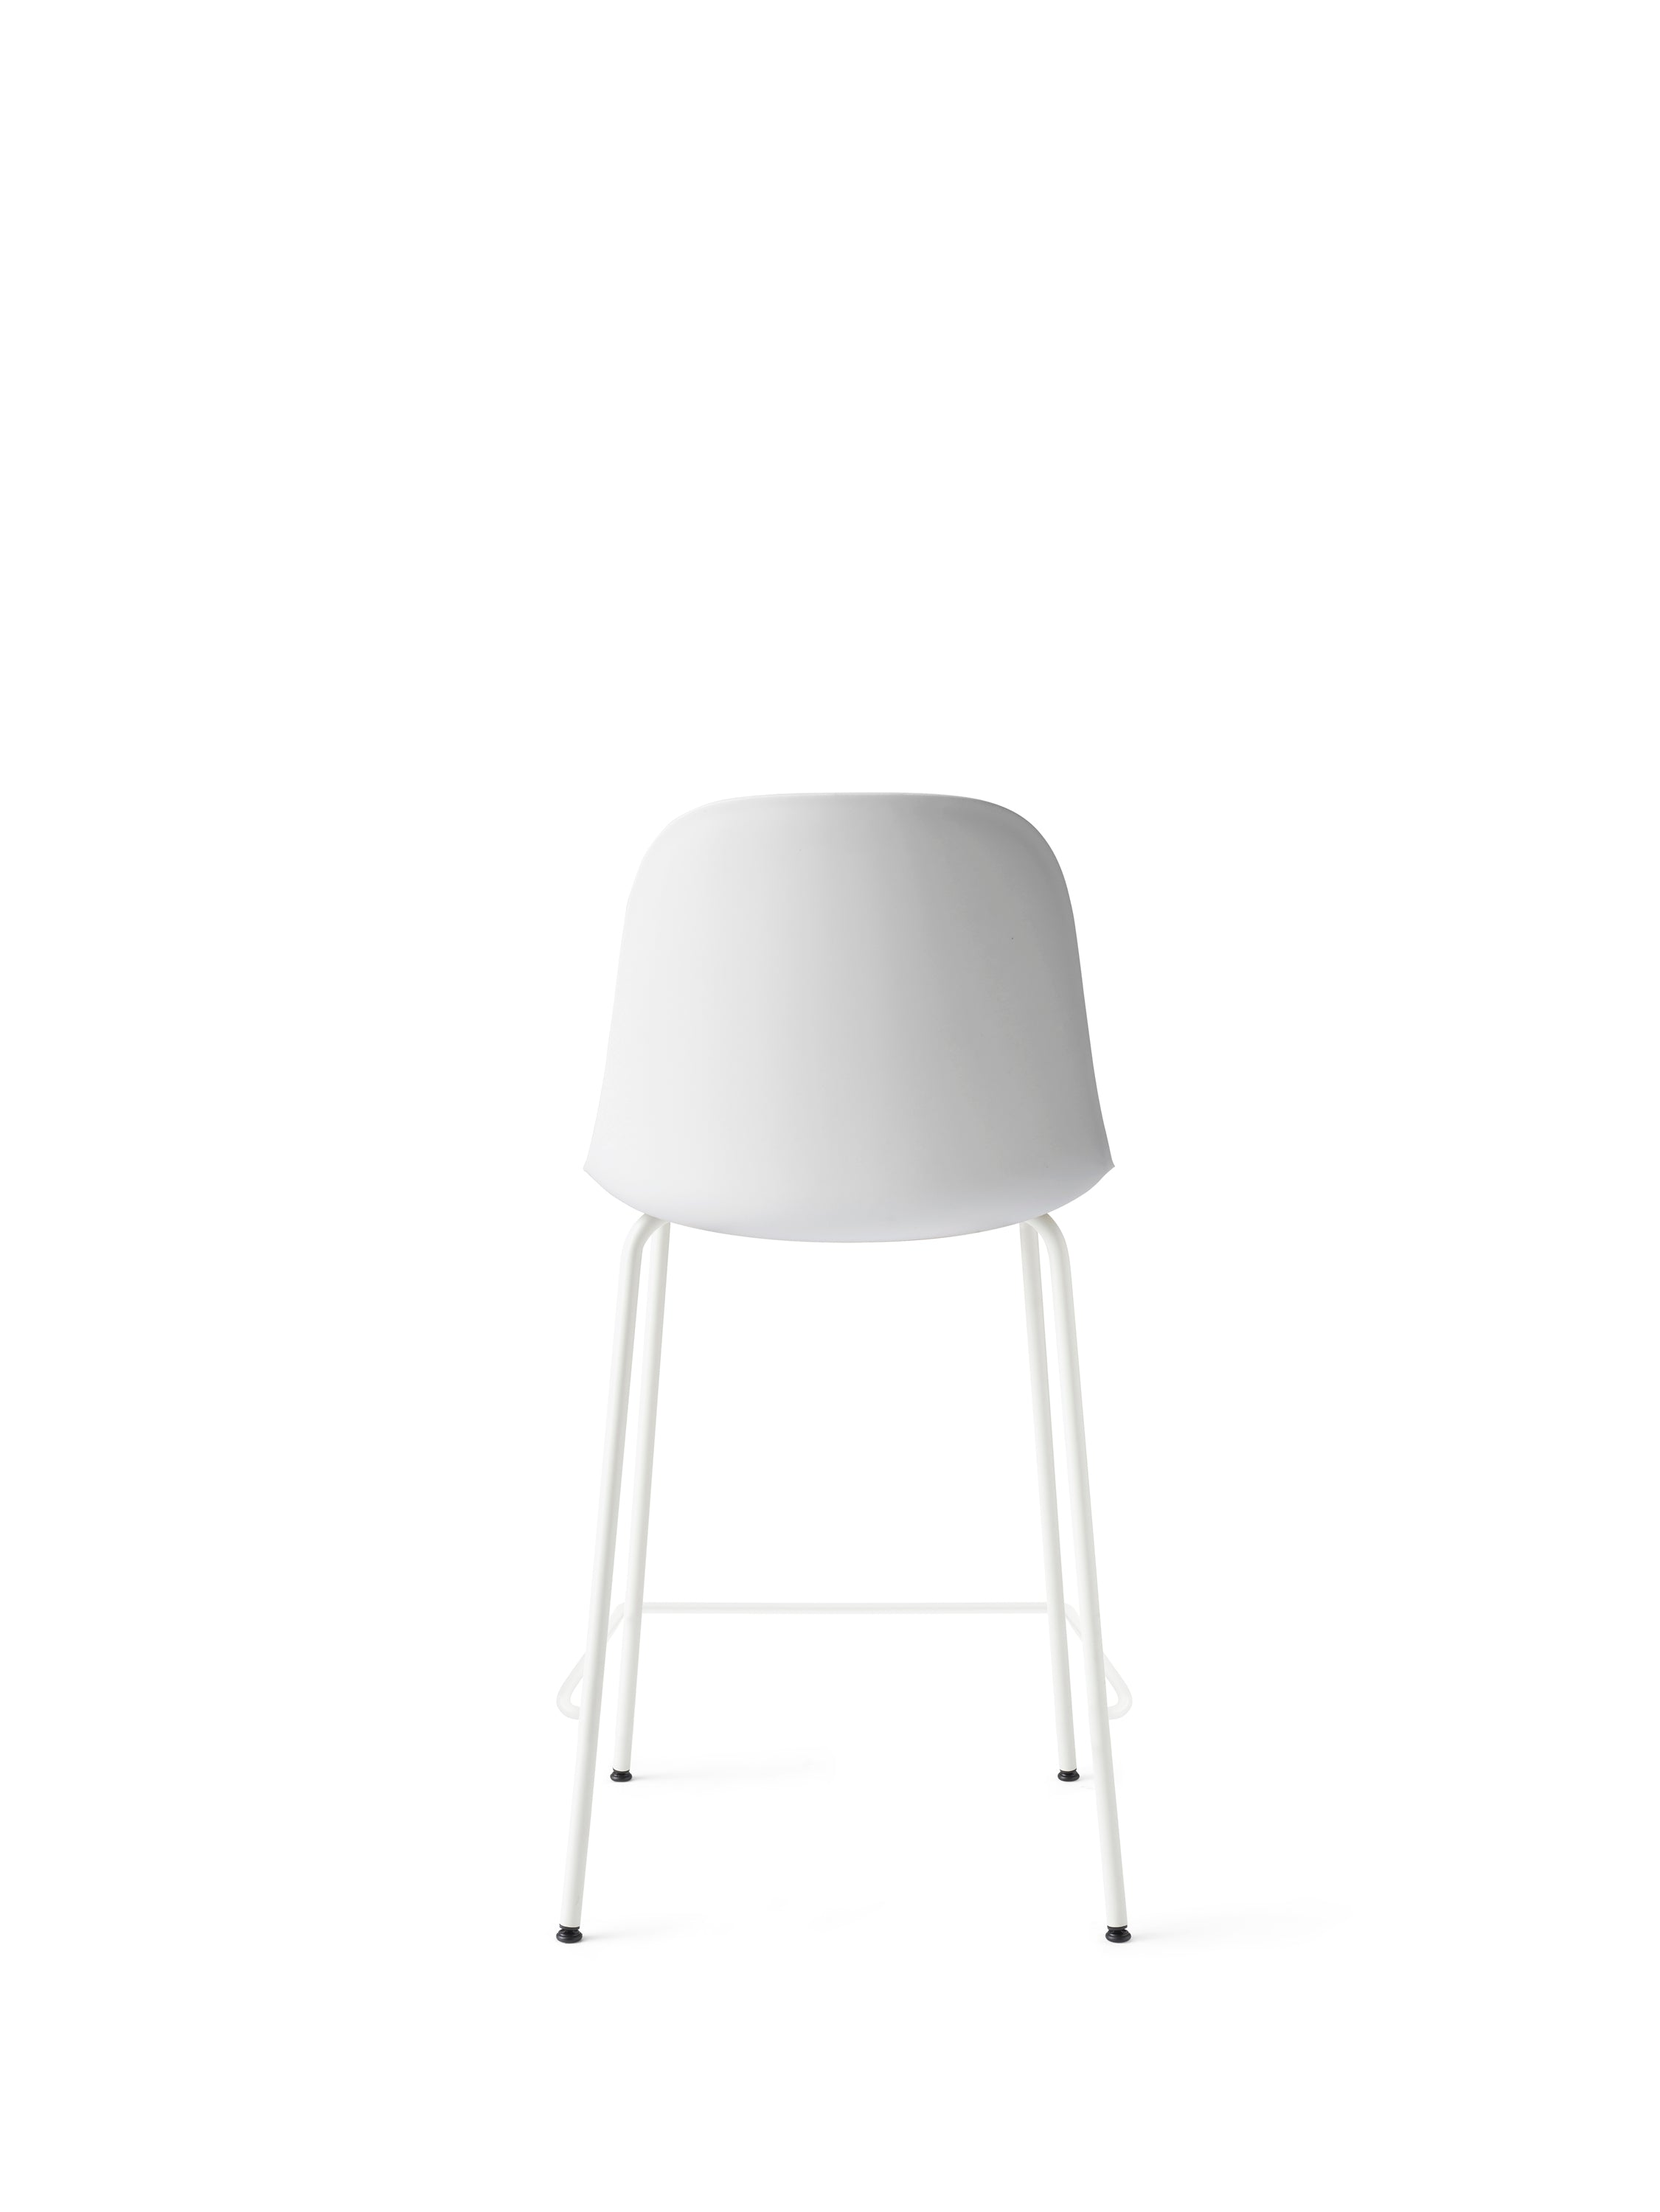 Harbour Side Chair - Counter, Light Grey Steel Base/White Shell fra Menu